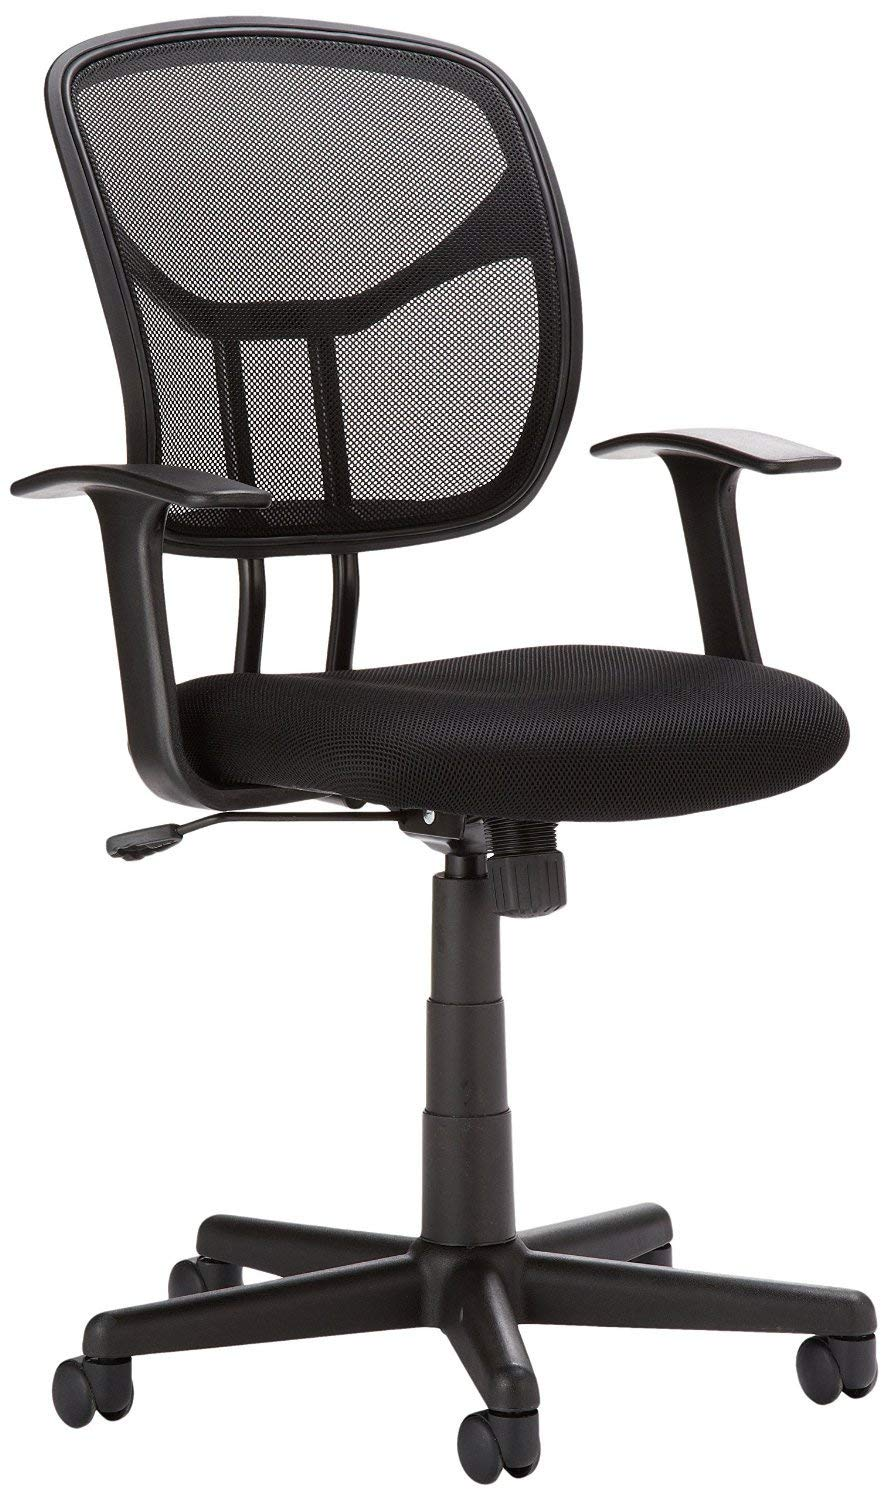 Desk Seat Best Desk Chairs For Any Office Herman Miller Steelcase And More